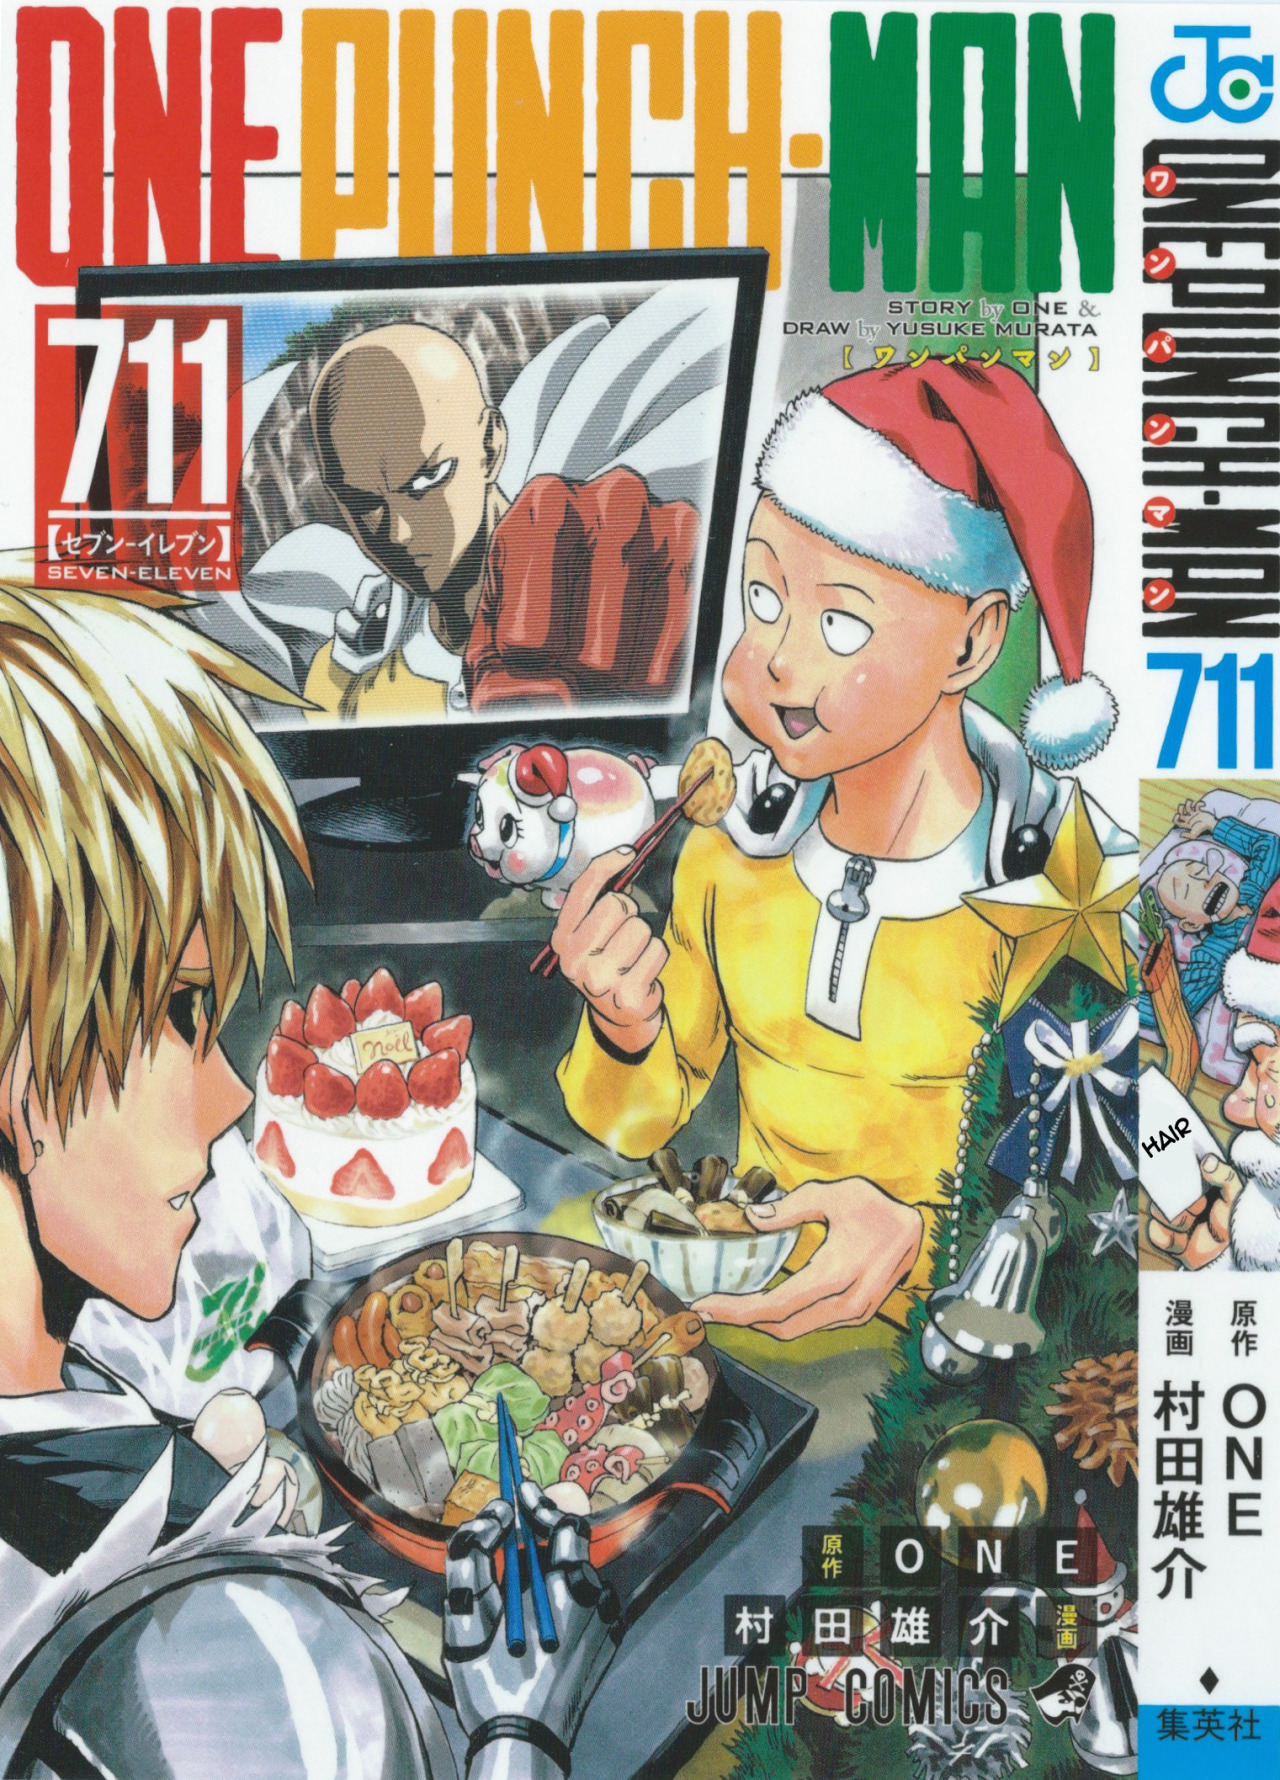 12 Days of Anime Christmas - Day 8: A Very One Punch Man